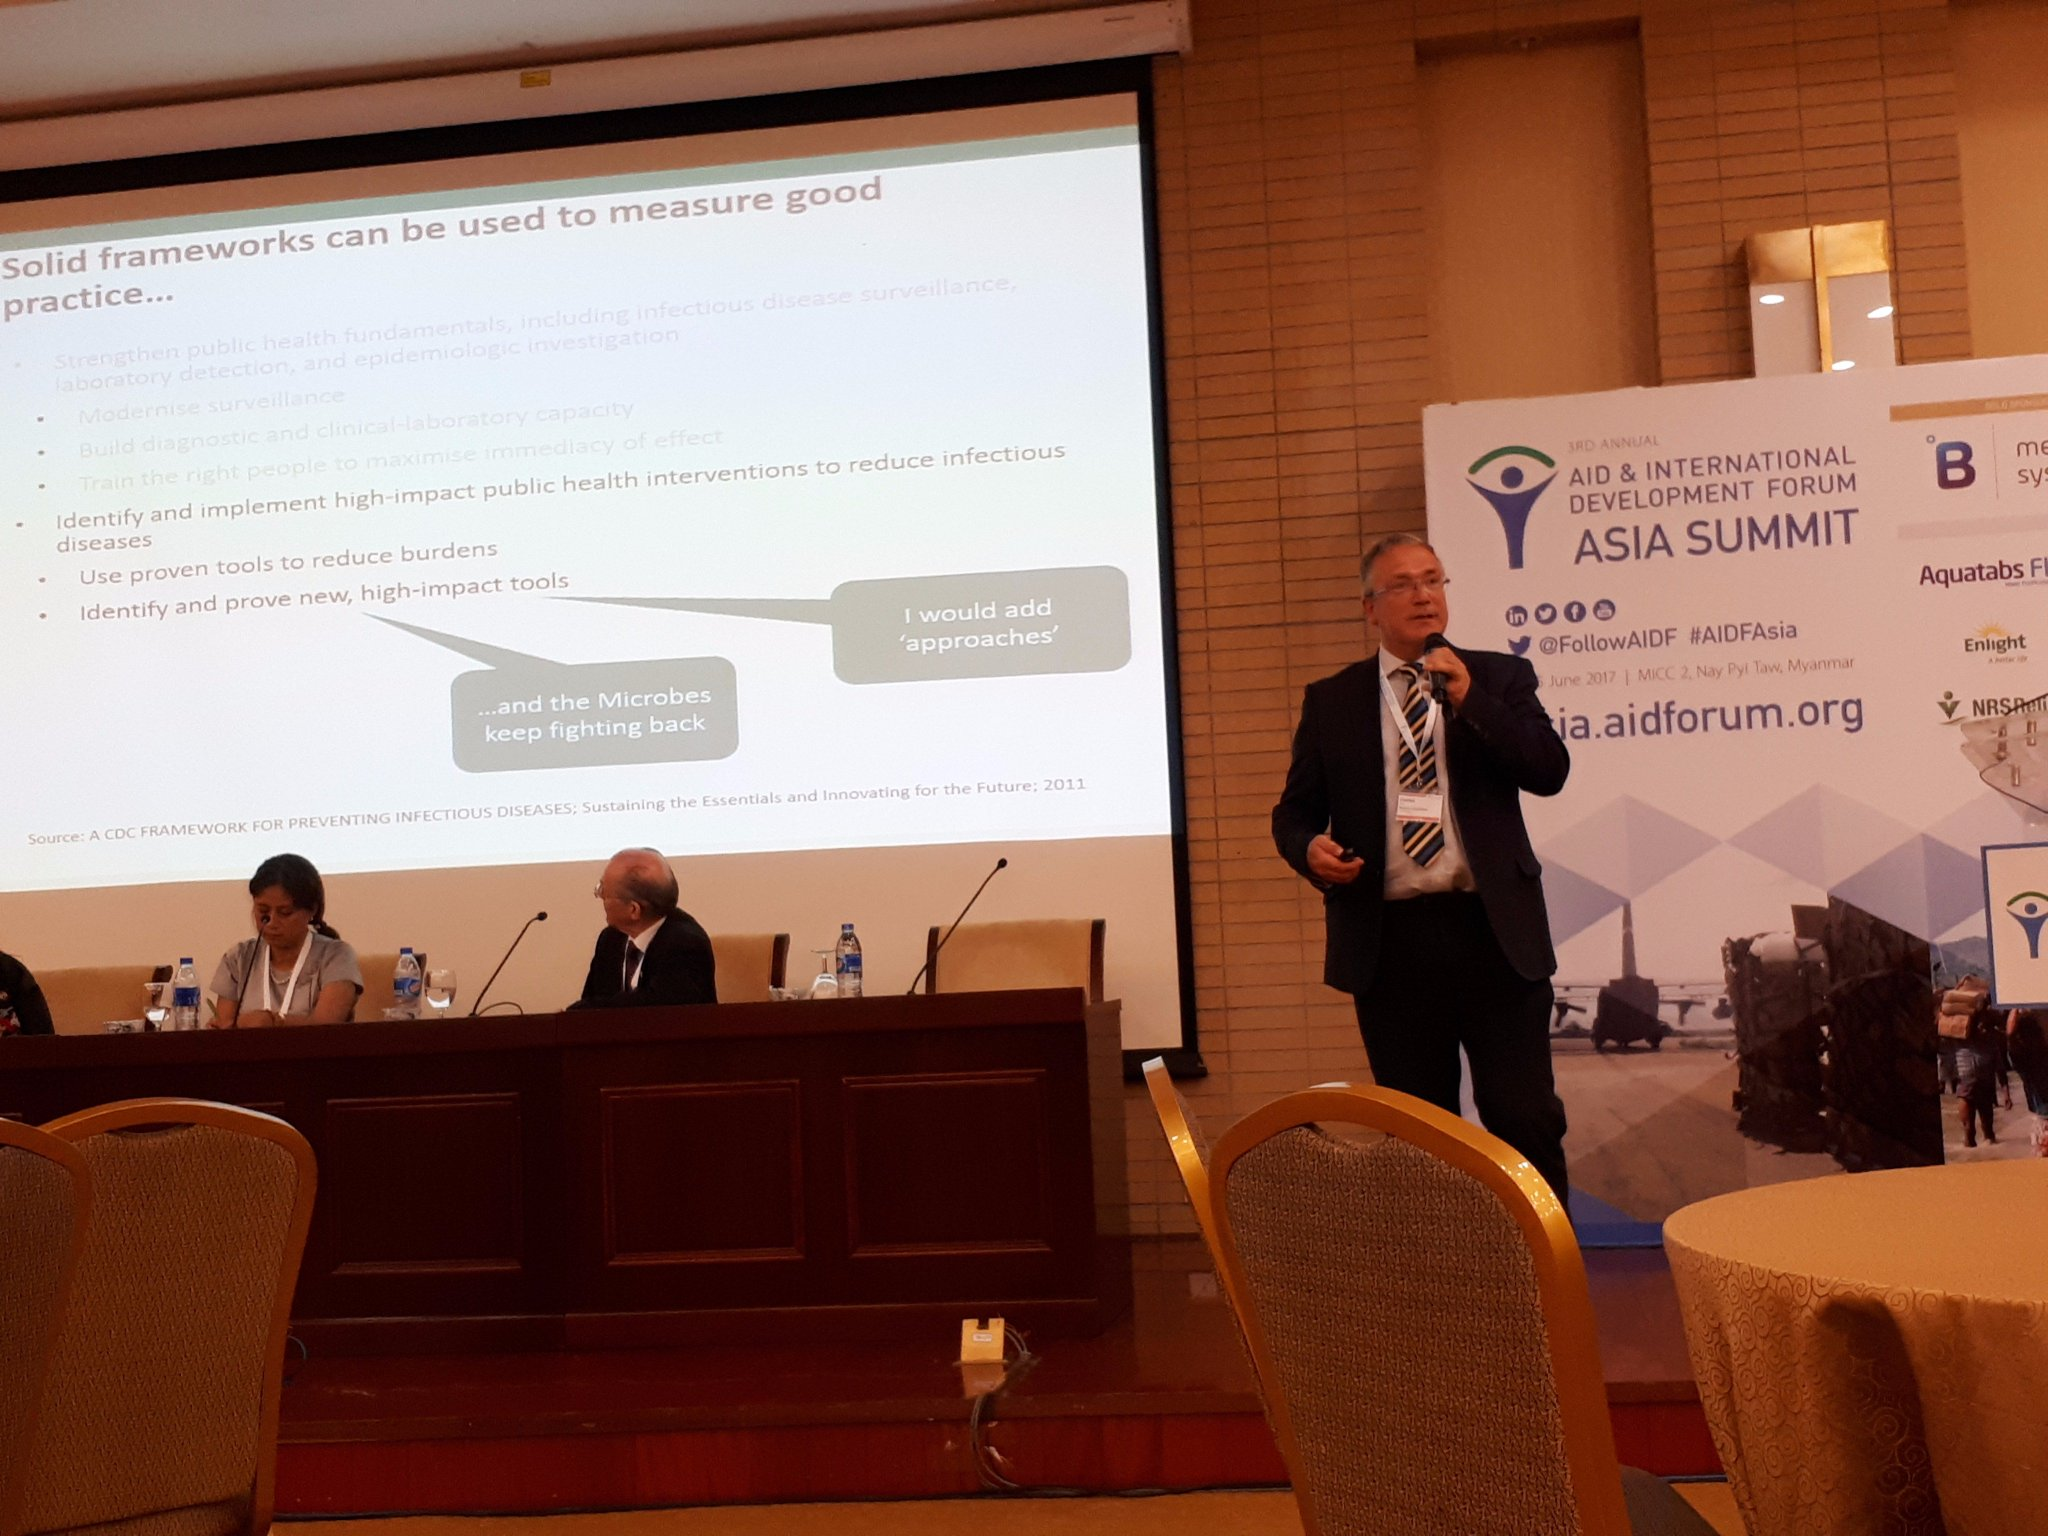 CEO Charles Nelson presenting at #AIDFAsia on Innovations and Best Practice to Tackle #CommunicableDiseases @FollowAIDF https://t.co/RiGNuEdaKD